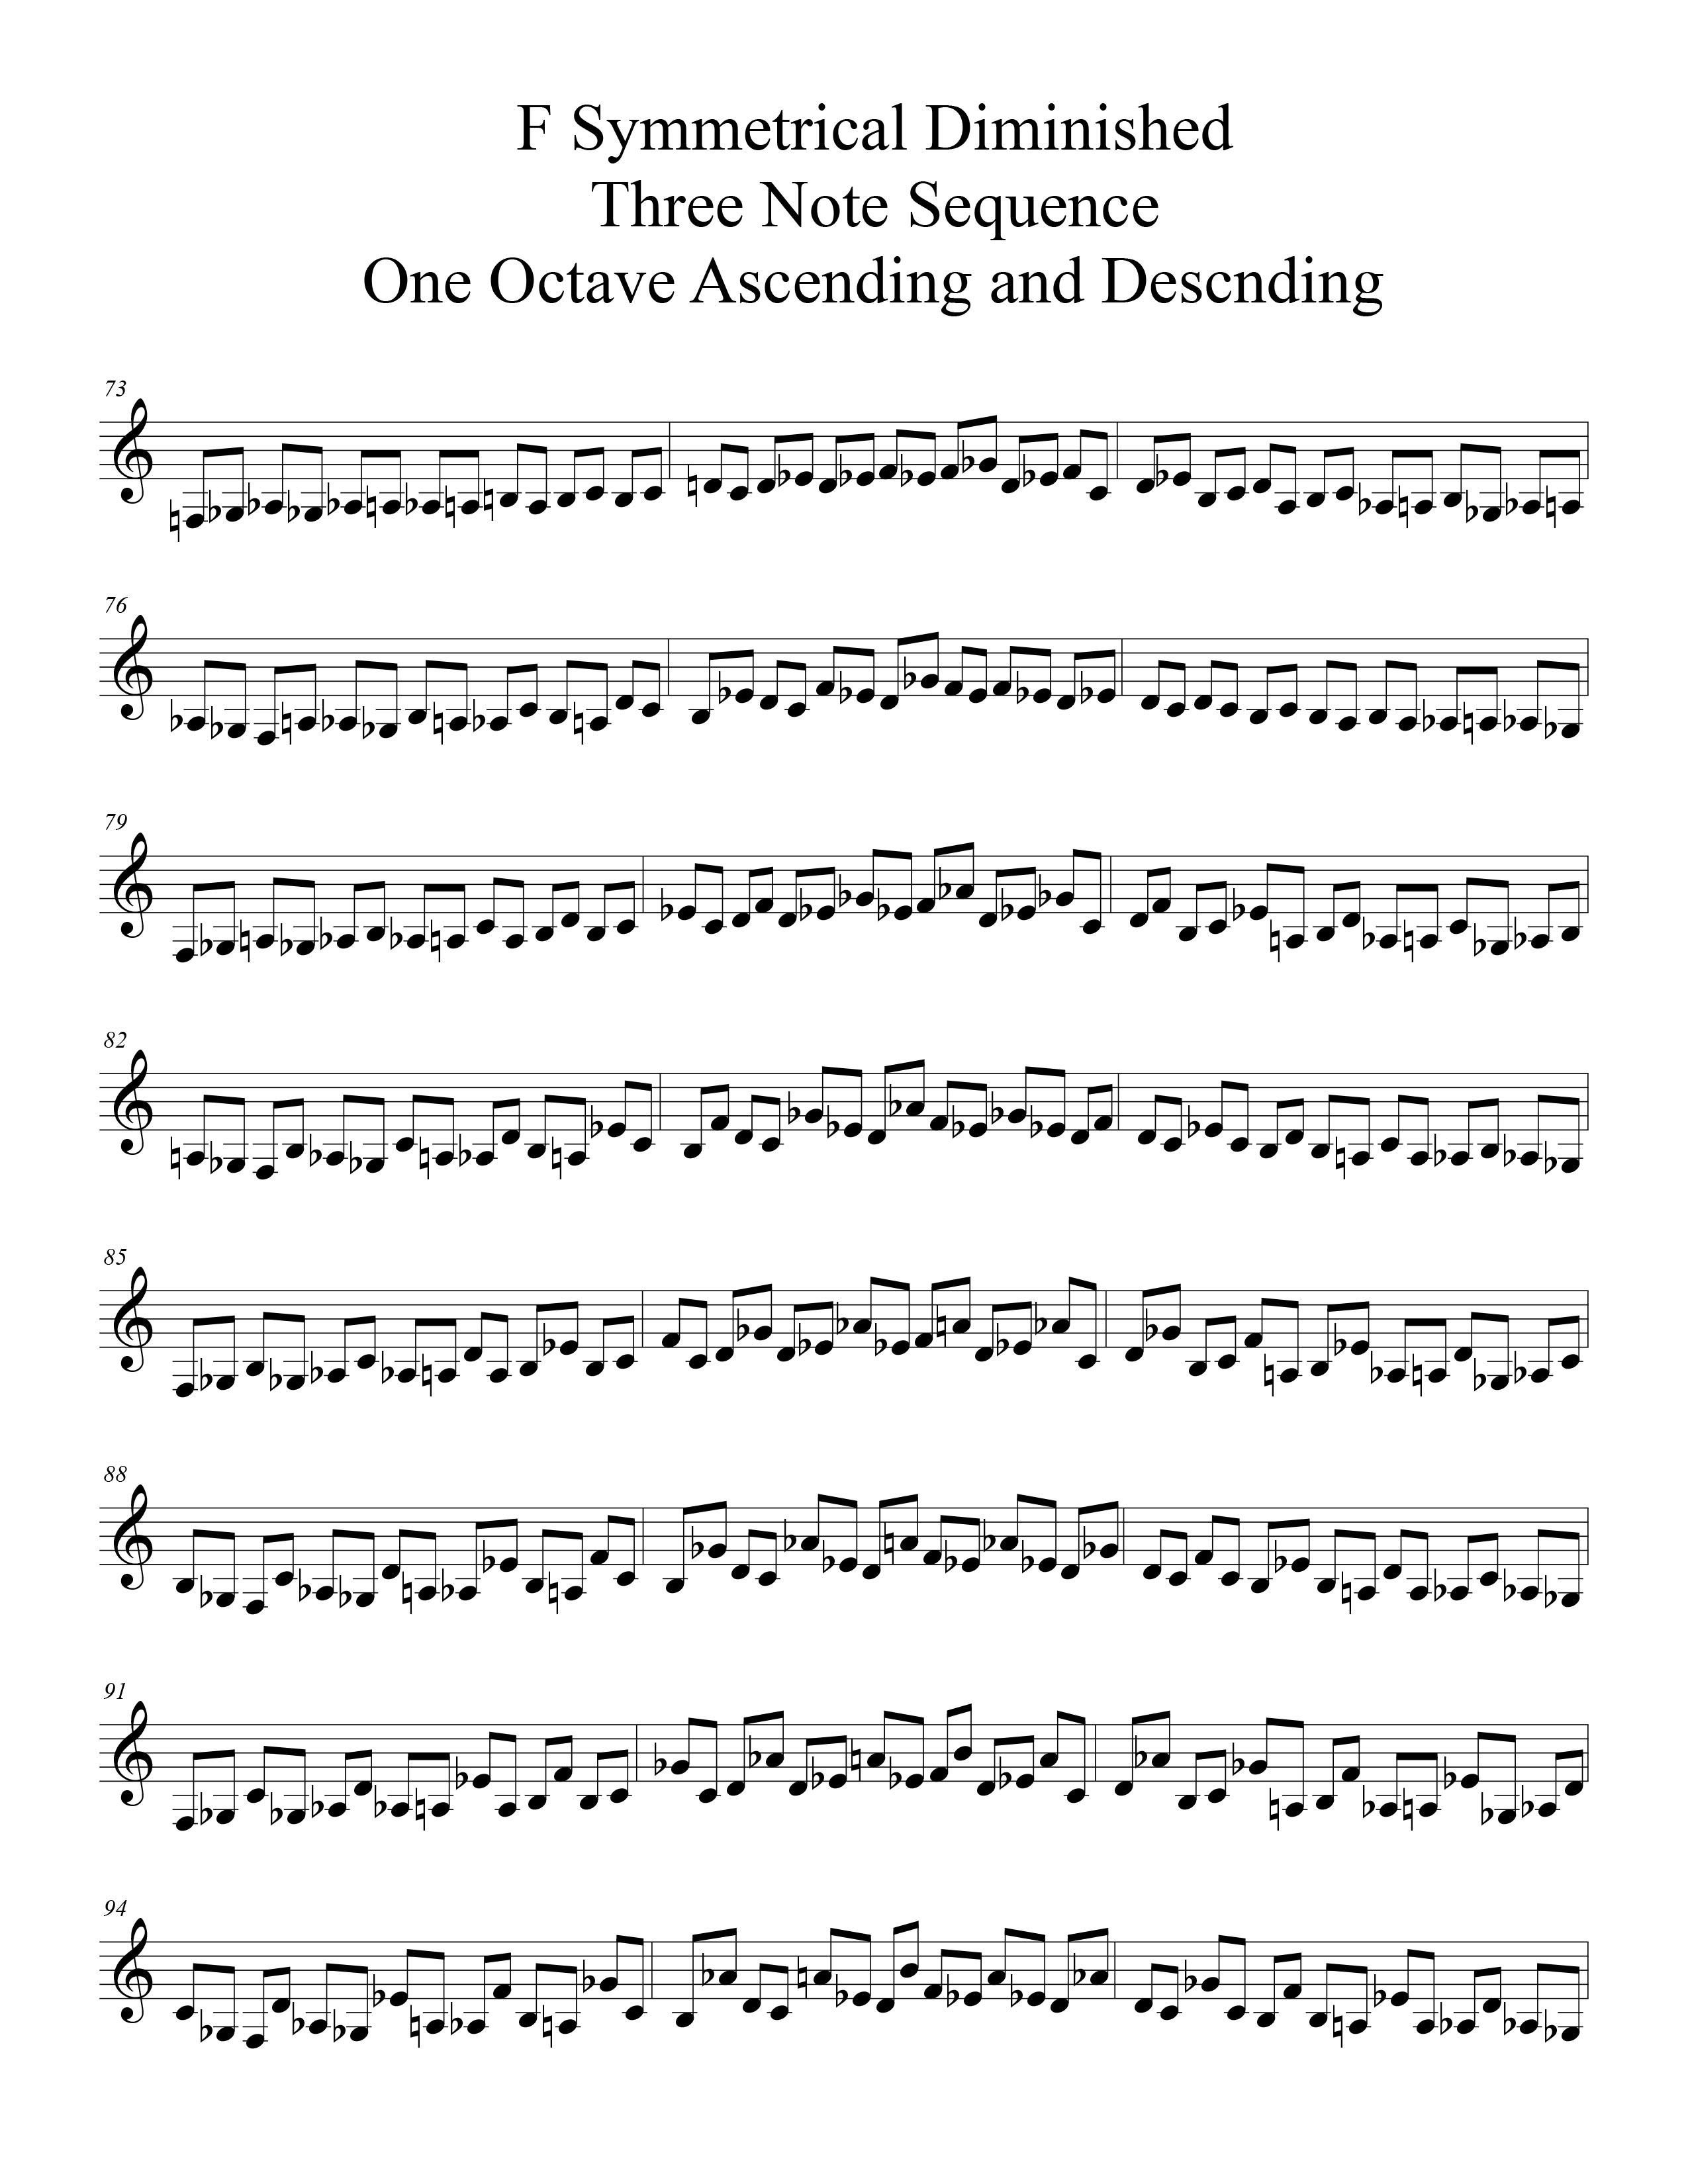 F Symmetrical Diminished Scale Modal Sequencing 3 Note Group 3 for all instrumentalist by Bruce Arnold for Muse Eek Publishing Company